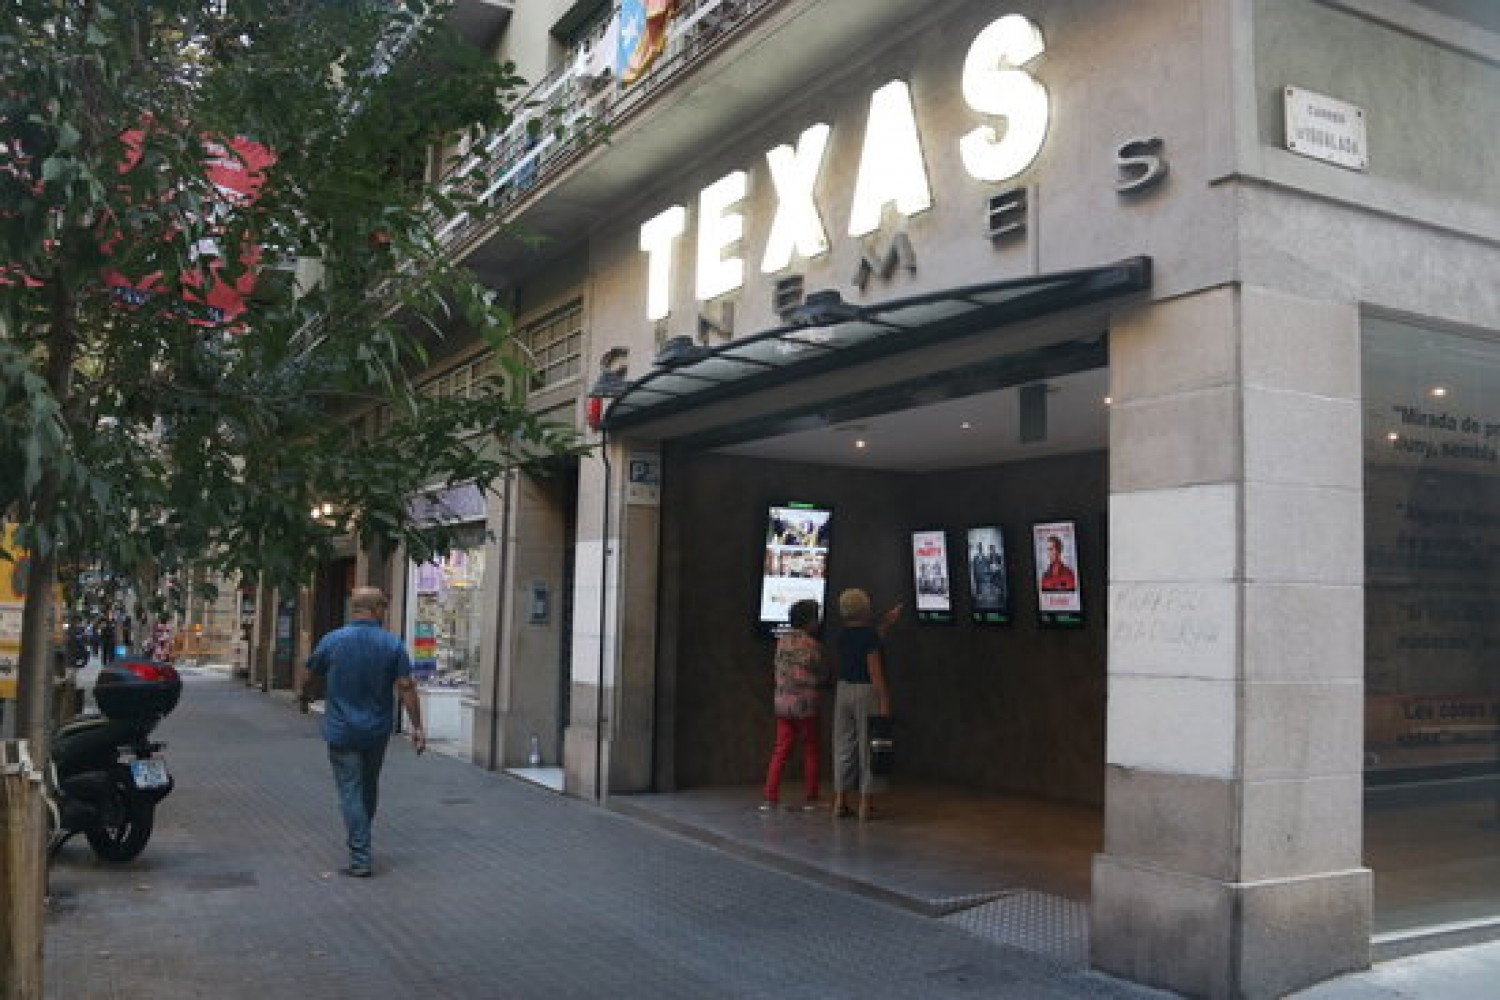 The Texas cinema, Barcelona, October 2, 2019 (by Pere Francesch)